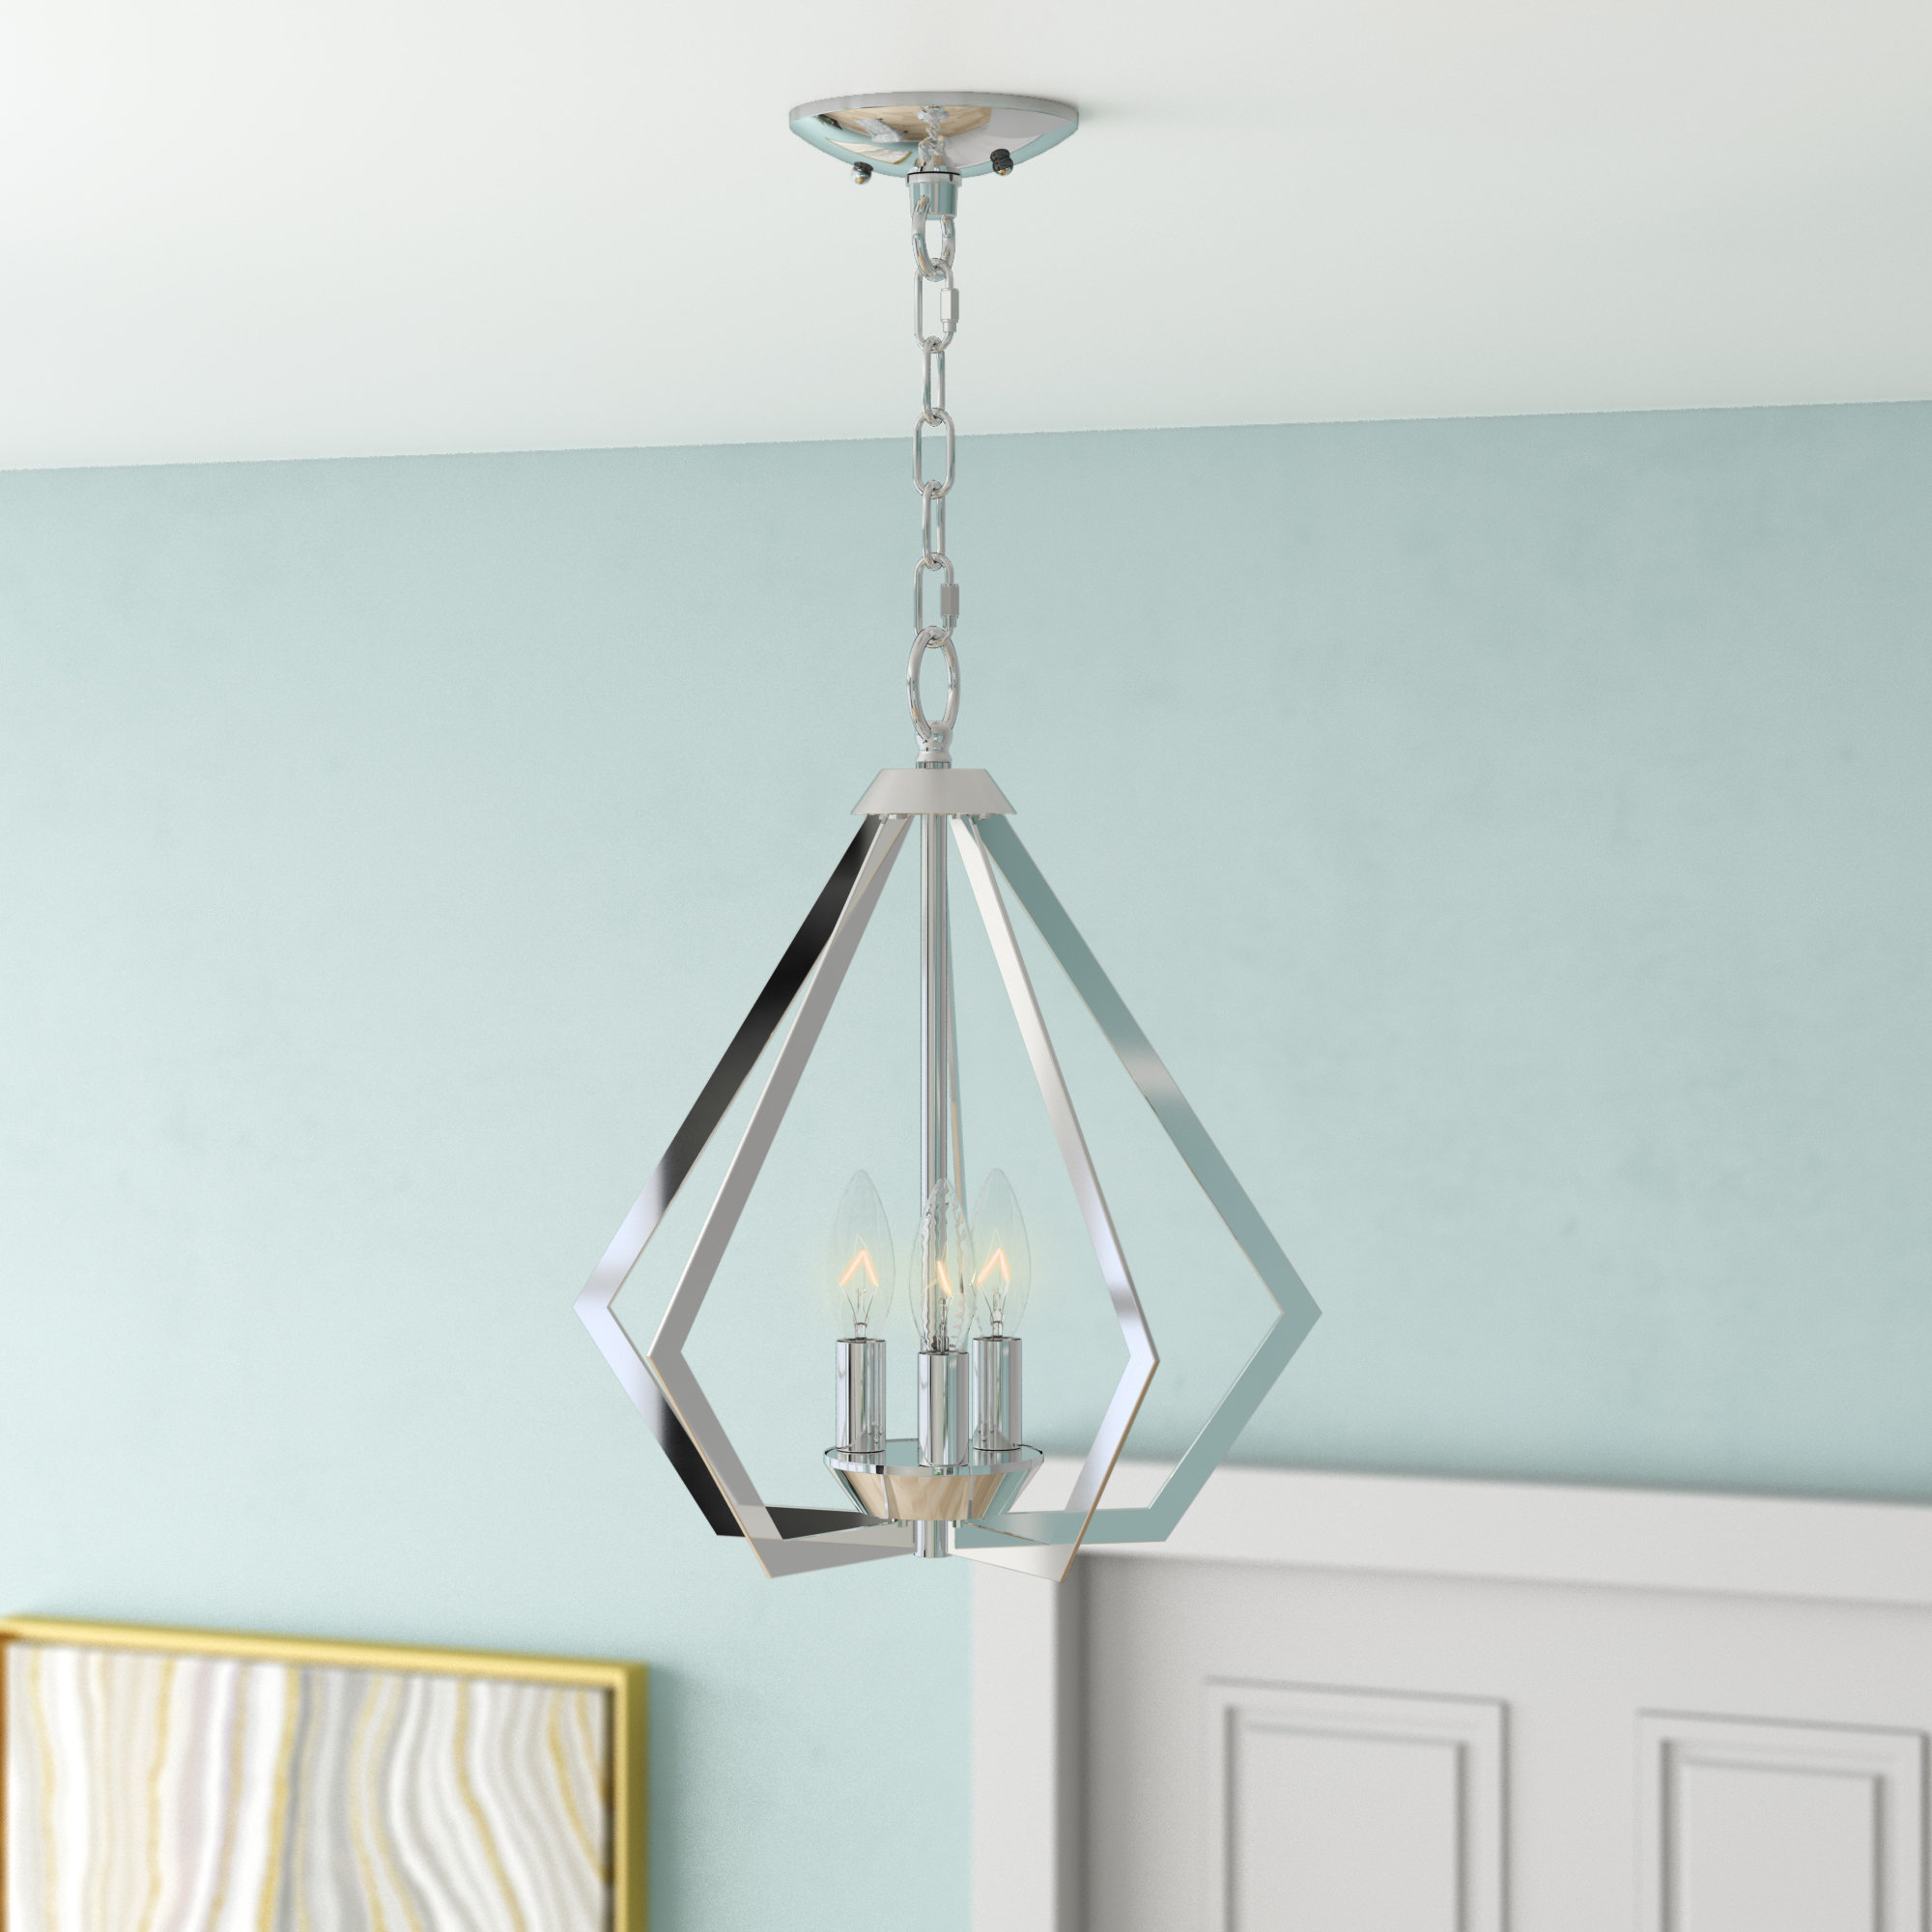 Isoline 2 Light Lantern Geometric Pendants Regarding Most Popular Willa Arlo Interiors Borasisi 3 Light Lantern Geometric (View 16 of 25)